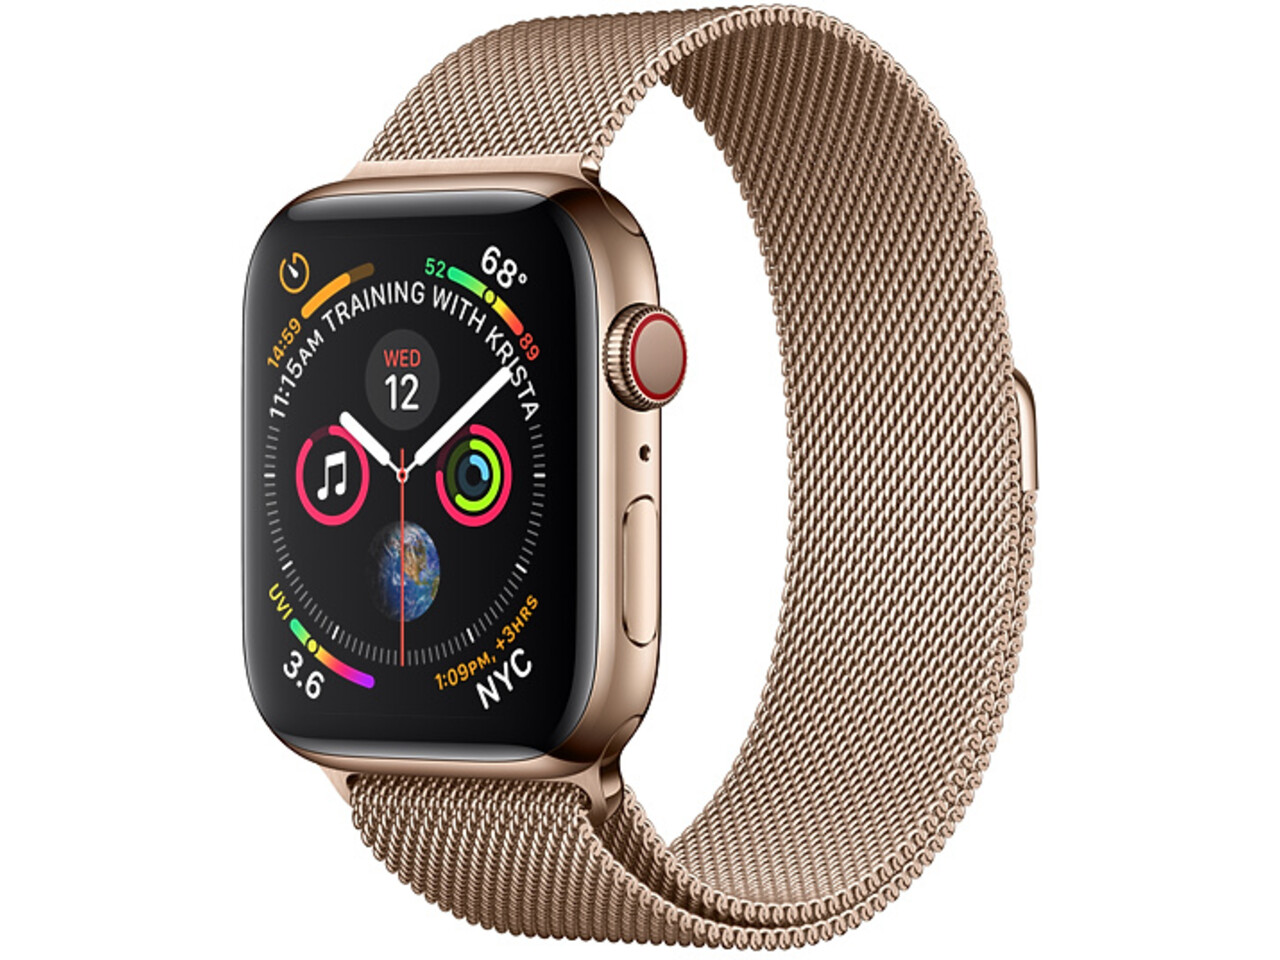 apple watch series 4 cellular 40mm gold stainless steel gold milanese loop